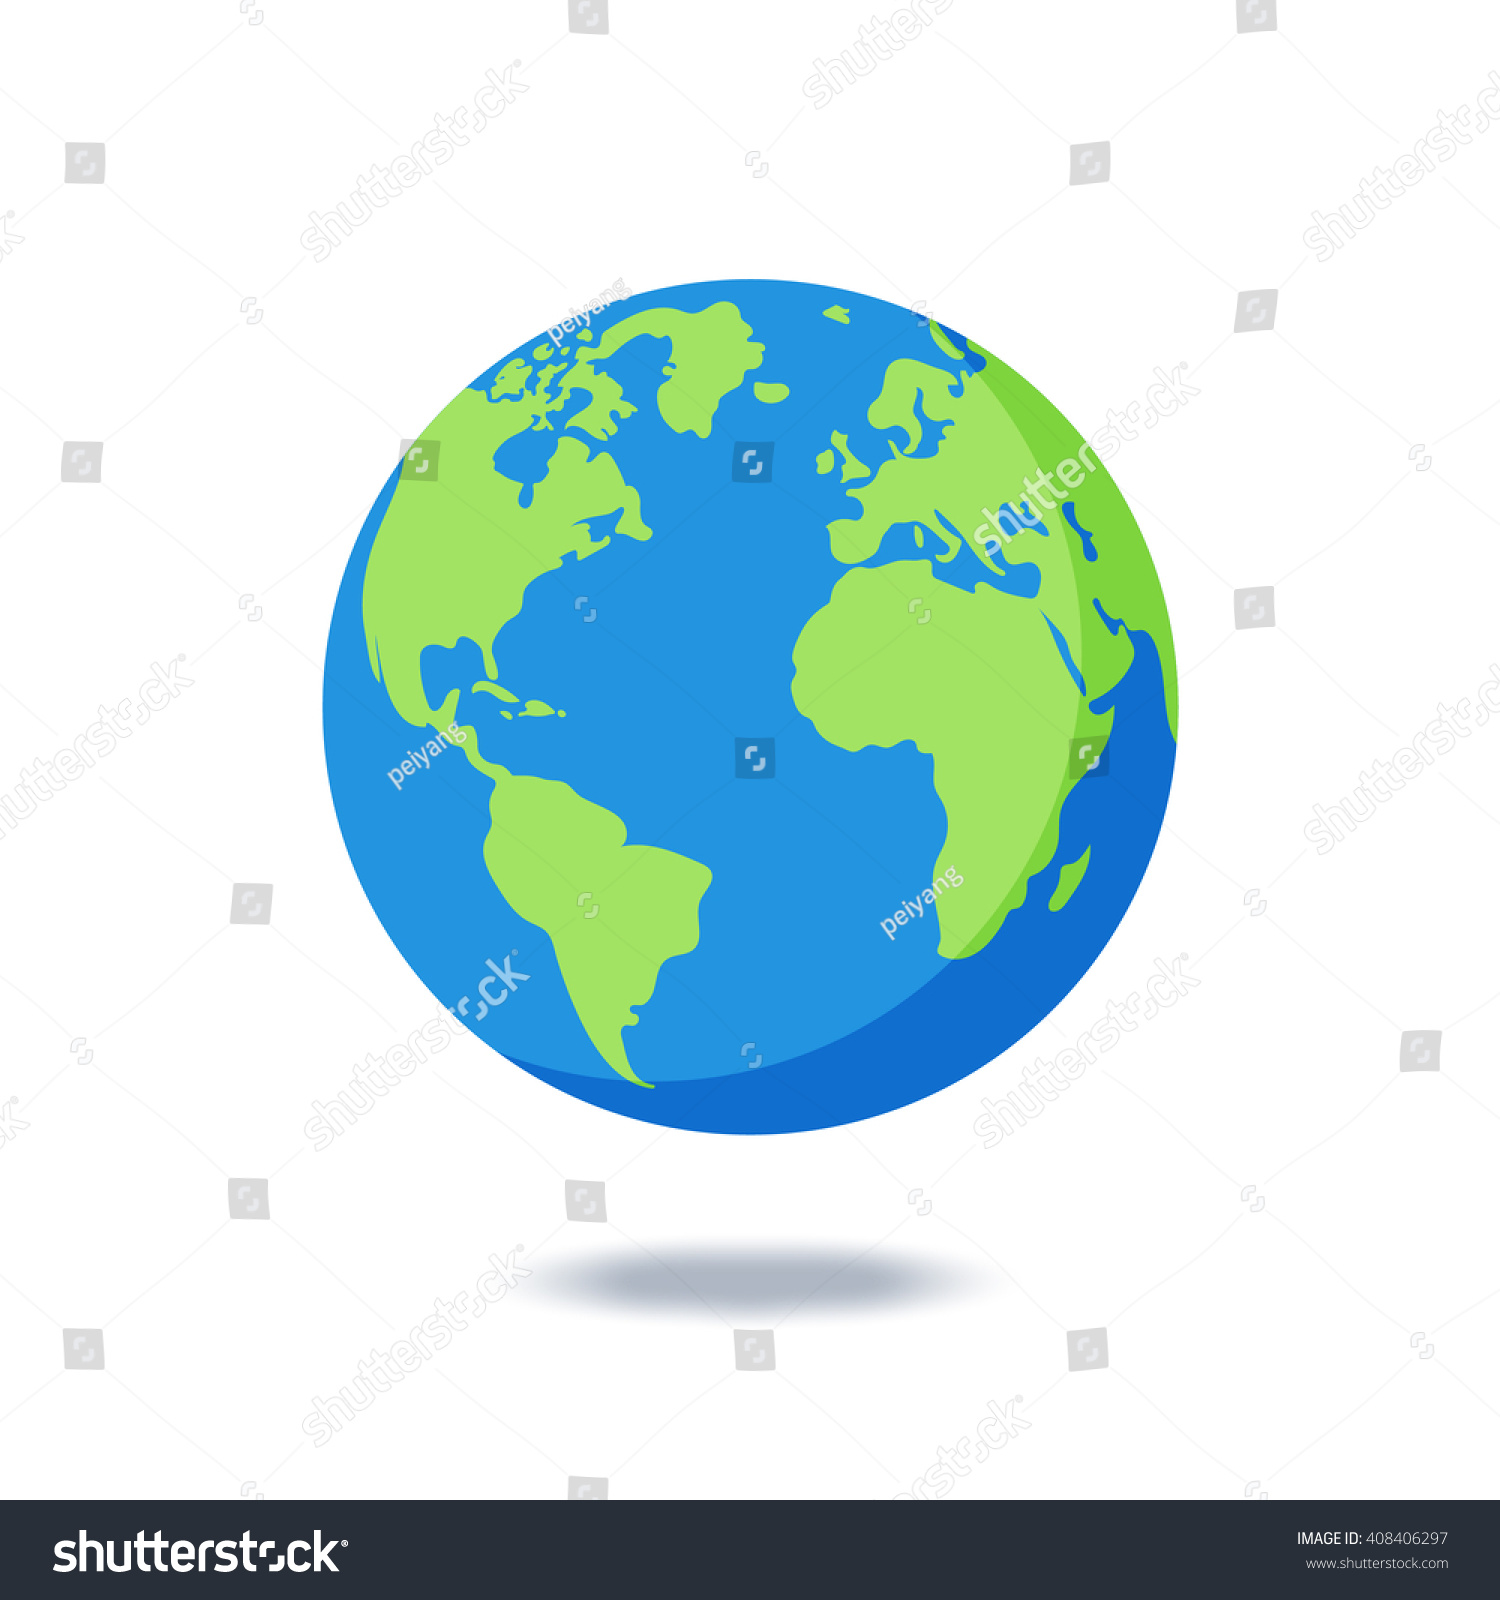 Flat planet earth icon a world globe isolated Vector Image   Earth Flat Icon Eps